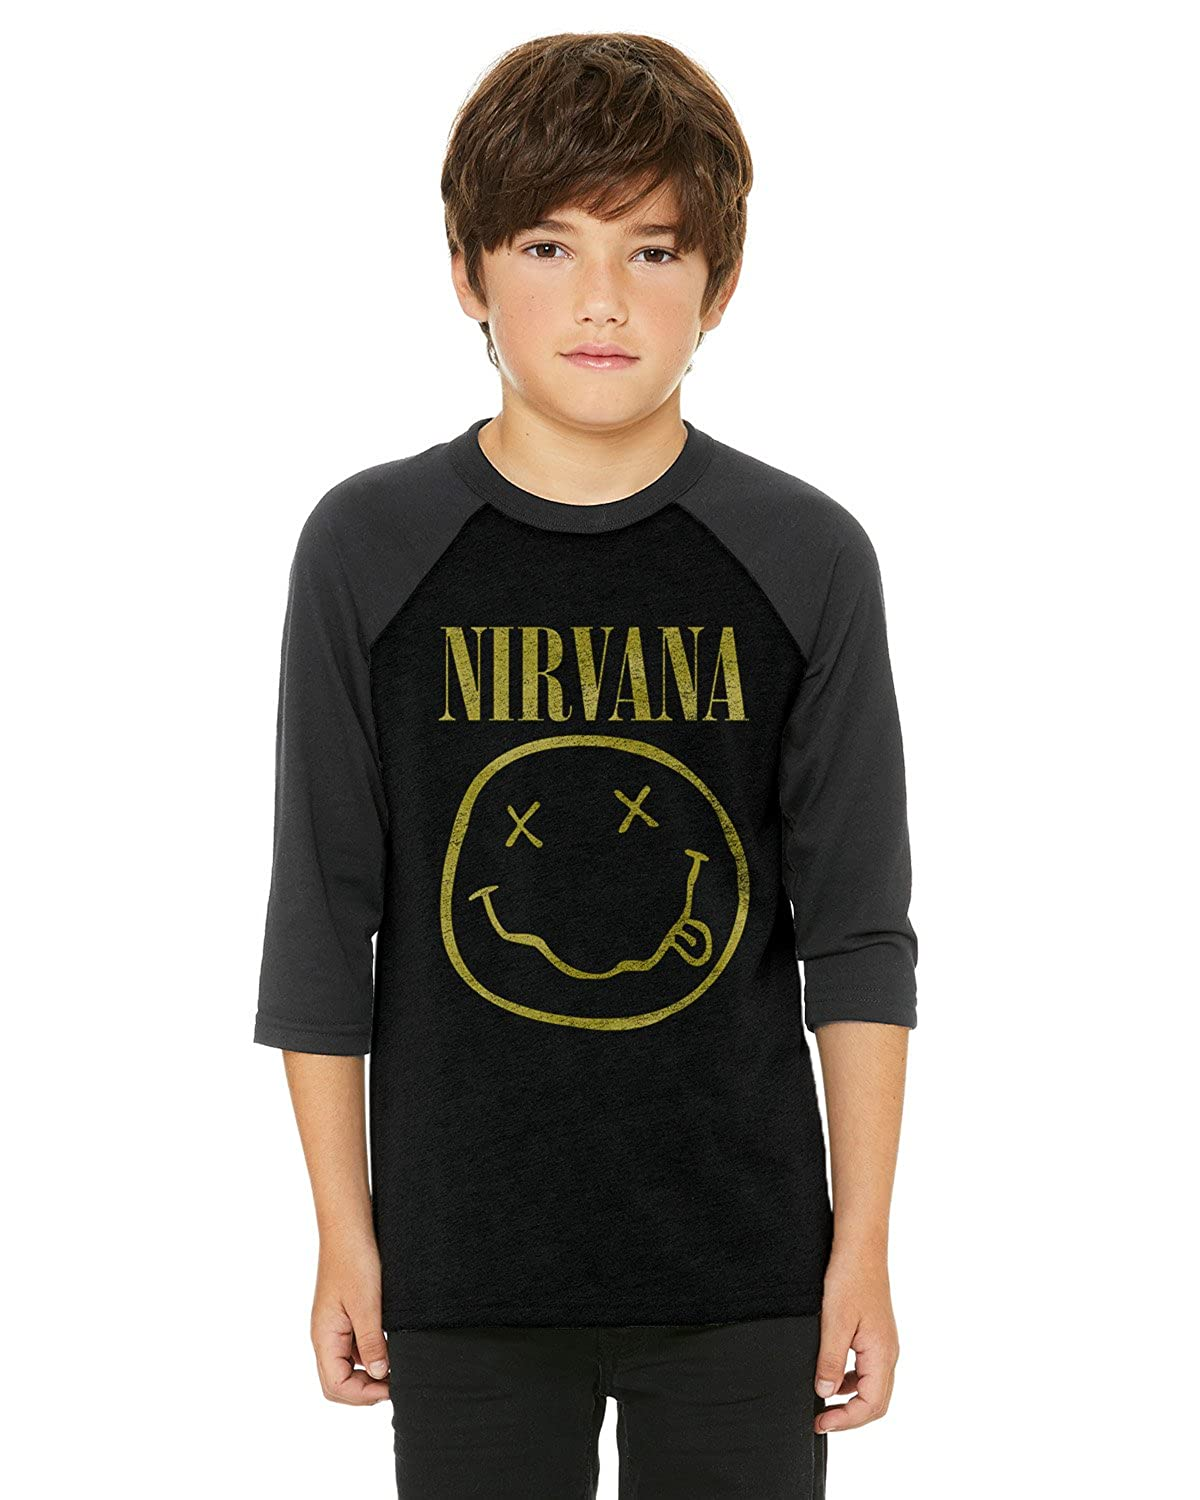 Nirvana Distressed Smile Youth Raglan Shirt